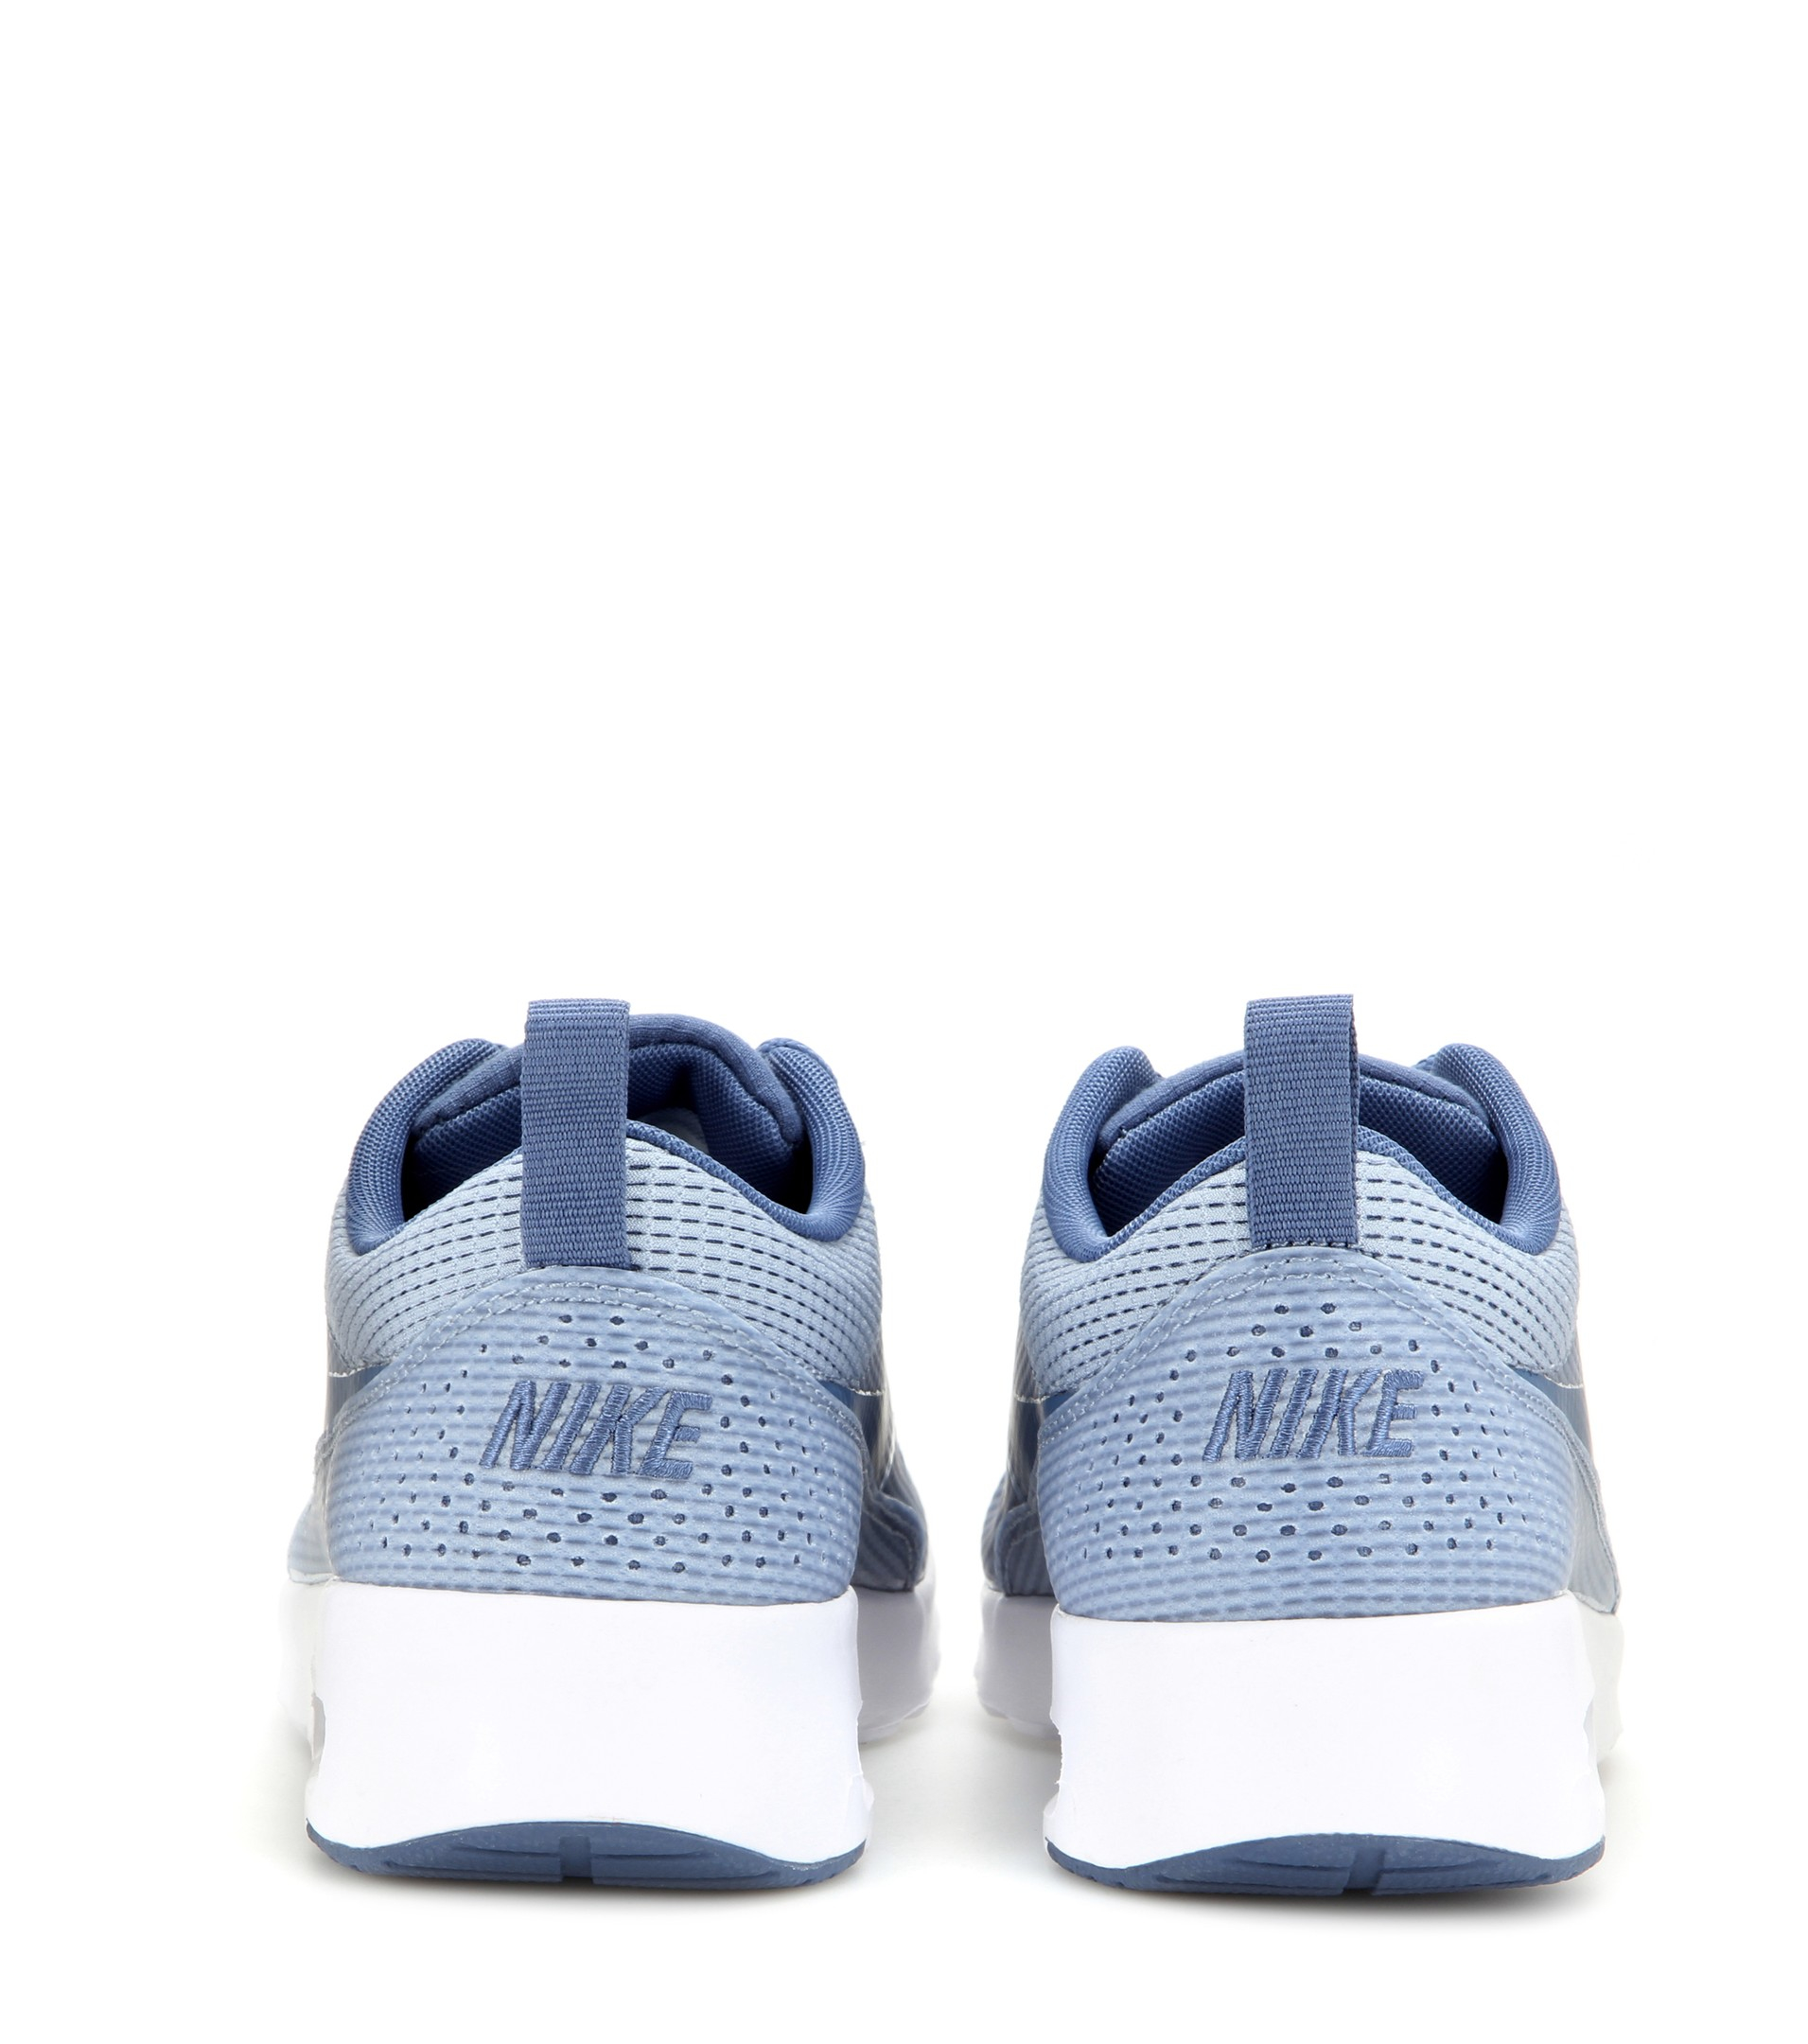 Nike Air Max Thea Txt Sneakers in Blue